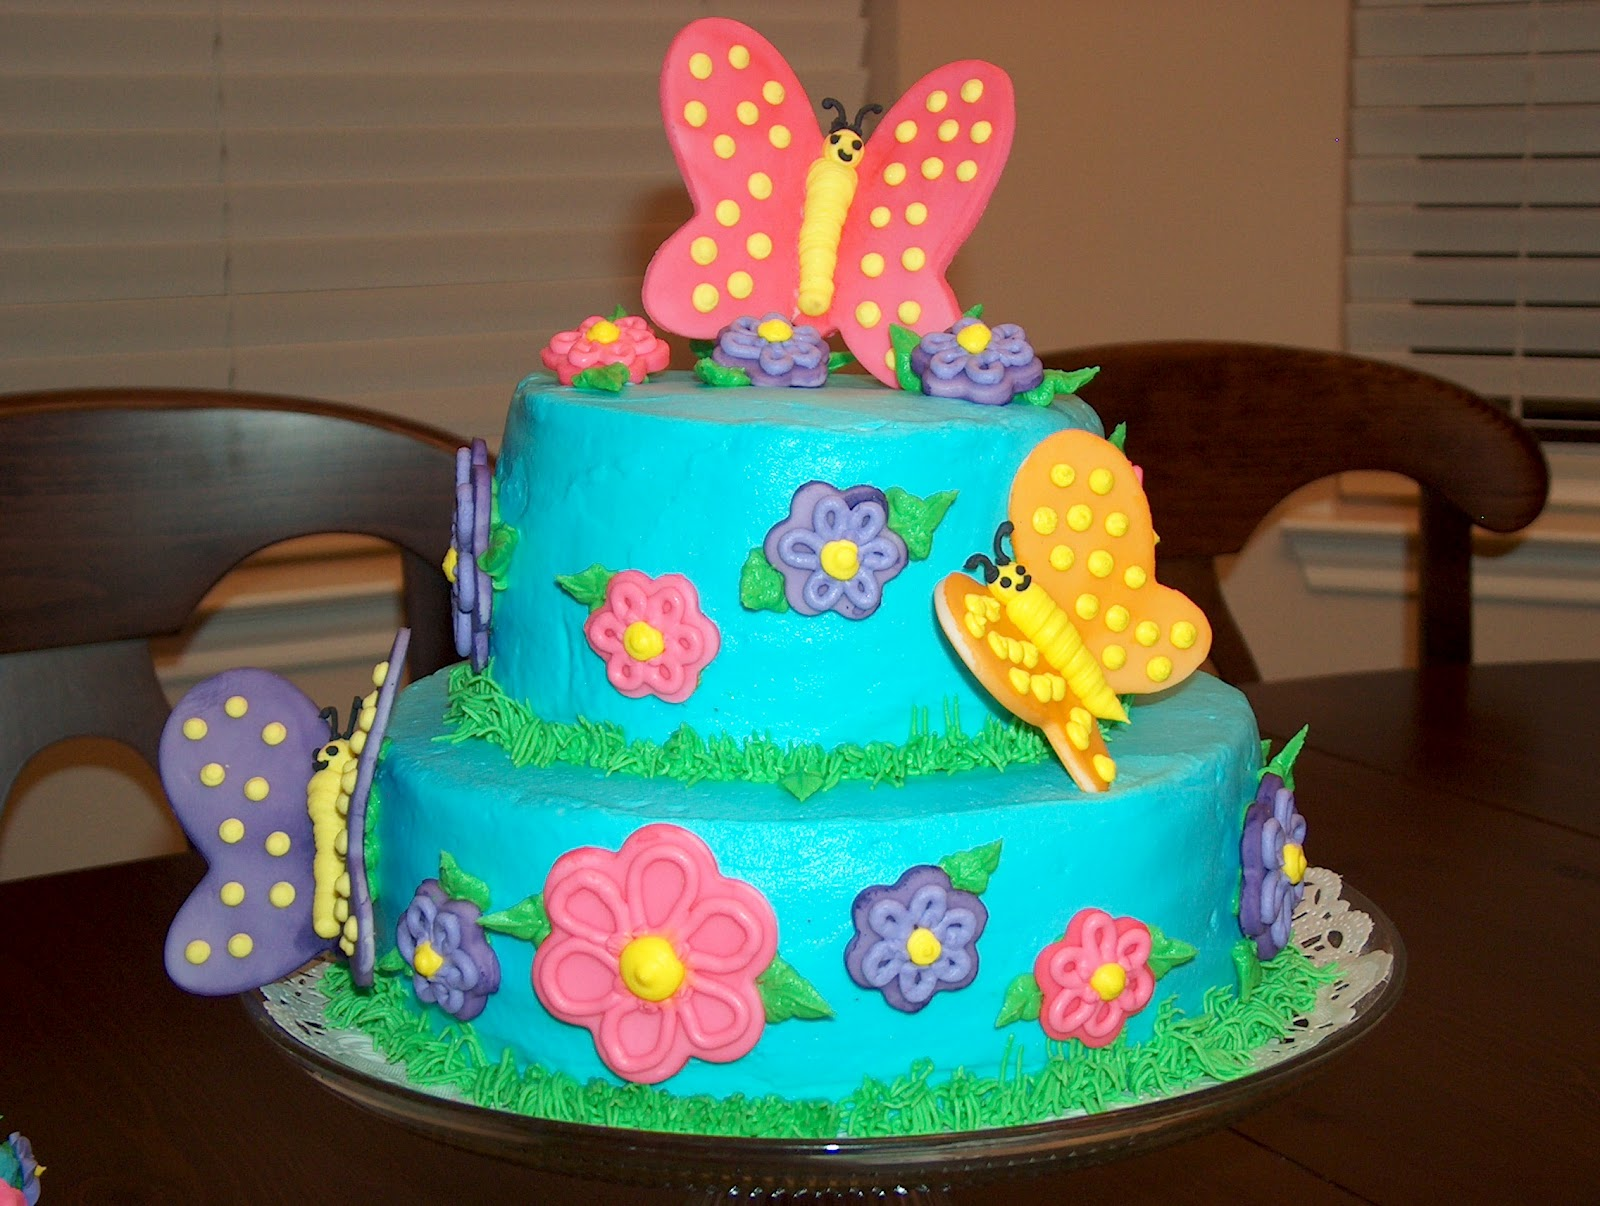 Cake Decorating Party Ideas : Themed Cakes, Birthday Cakes, Wedding Cakes: ButterFly ...